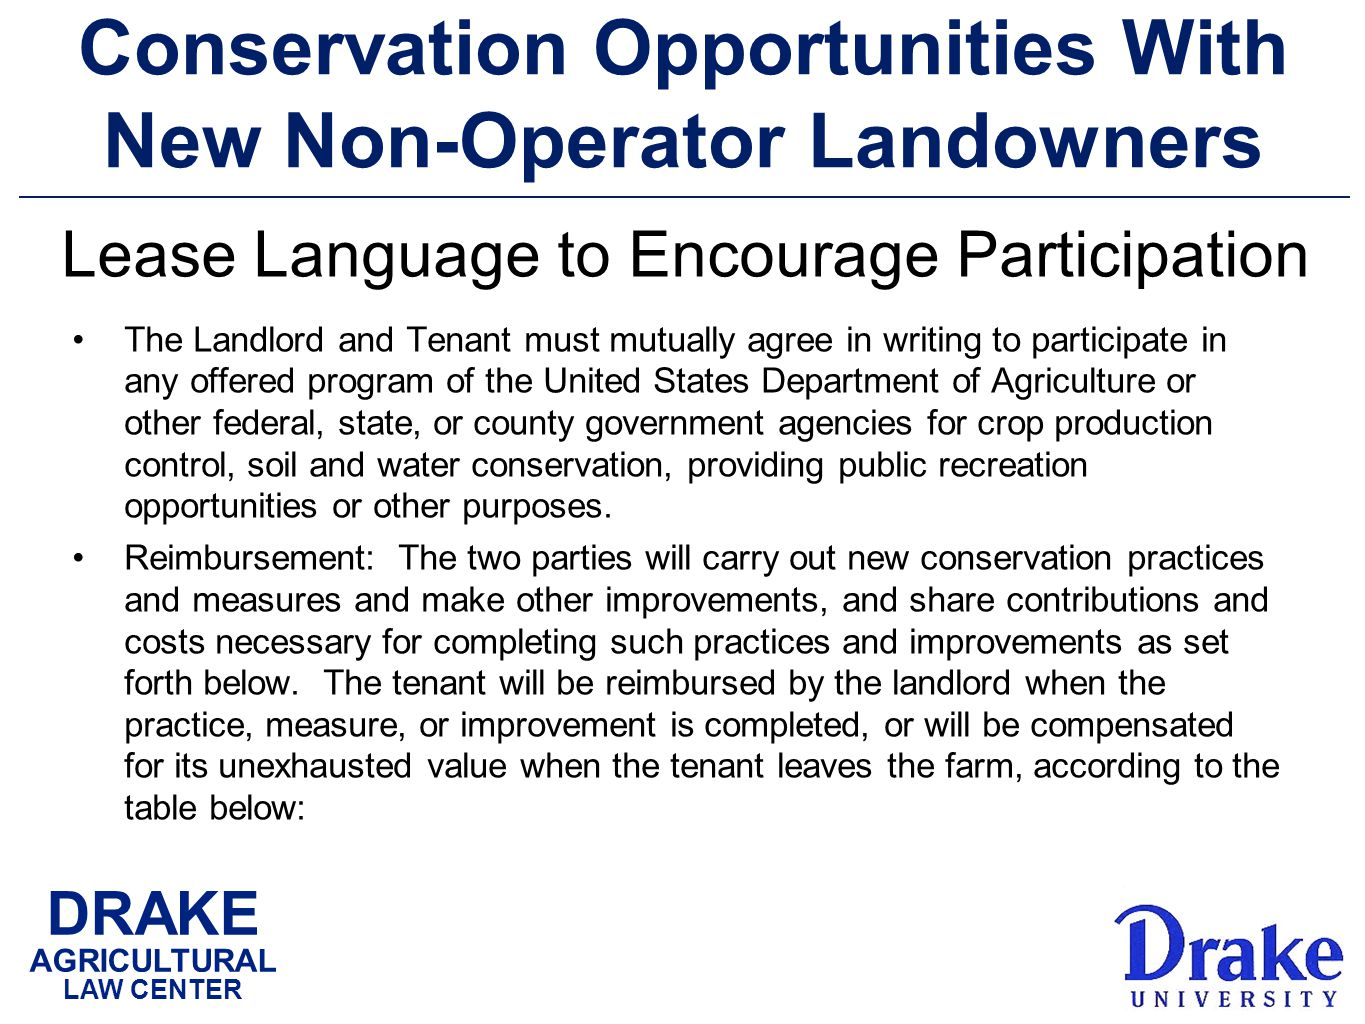 DRAKE AGRICULTURAL LAW CENTER Conservation Opportunities With New Non-Operator Landowners The Landlord and Tenant must mutually agree in writing to participate in any offered program of the United States Department of Agriculture or other federal, state, or county government agencies for crop production control, soil and water conservation, providing public recreation opportunities or other purposes.